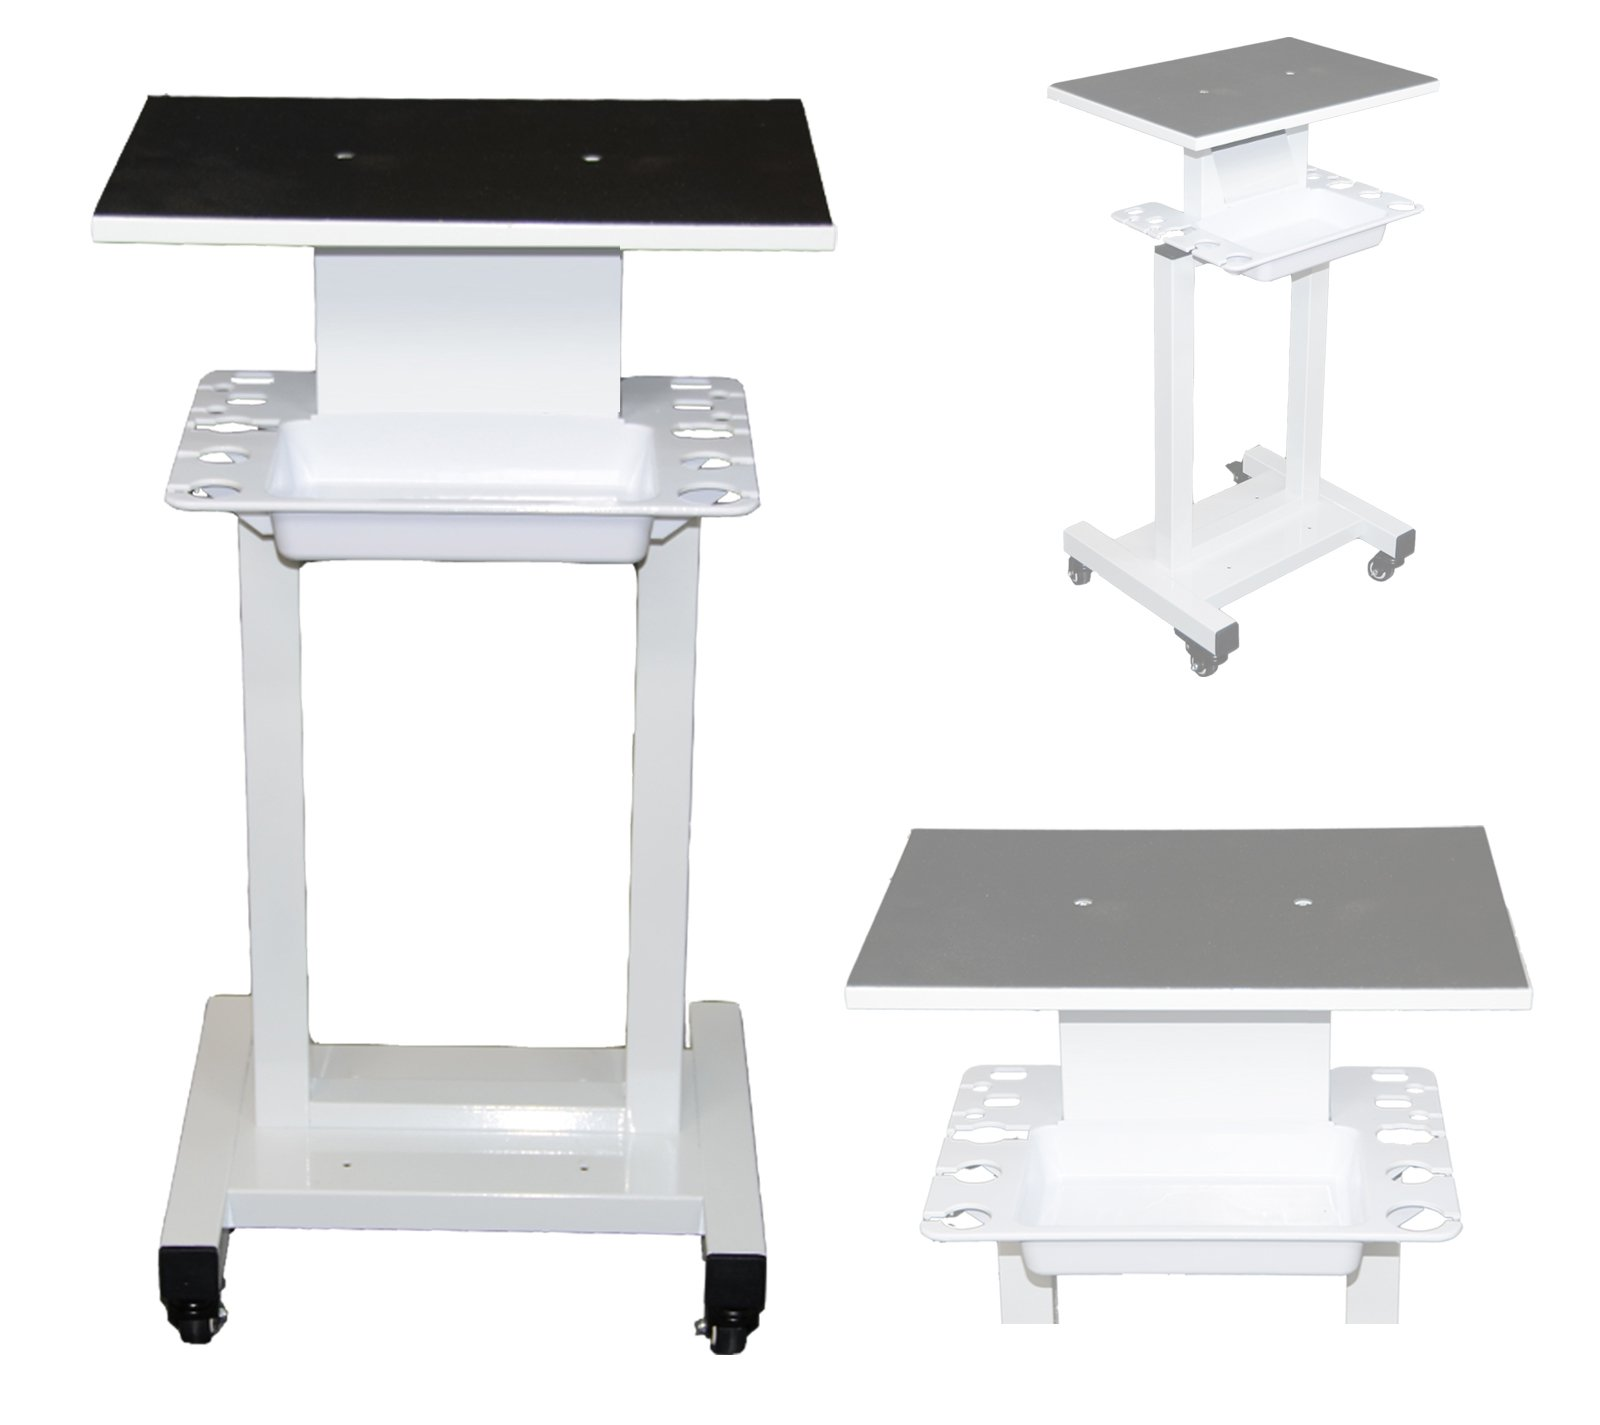 LCL Beauty Steel Frame Salon Spa Roller Trolley Cart Stand Storage Bin and Tool Implement Racks by LCL Beauty